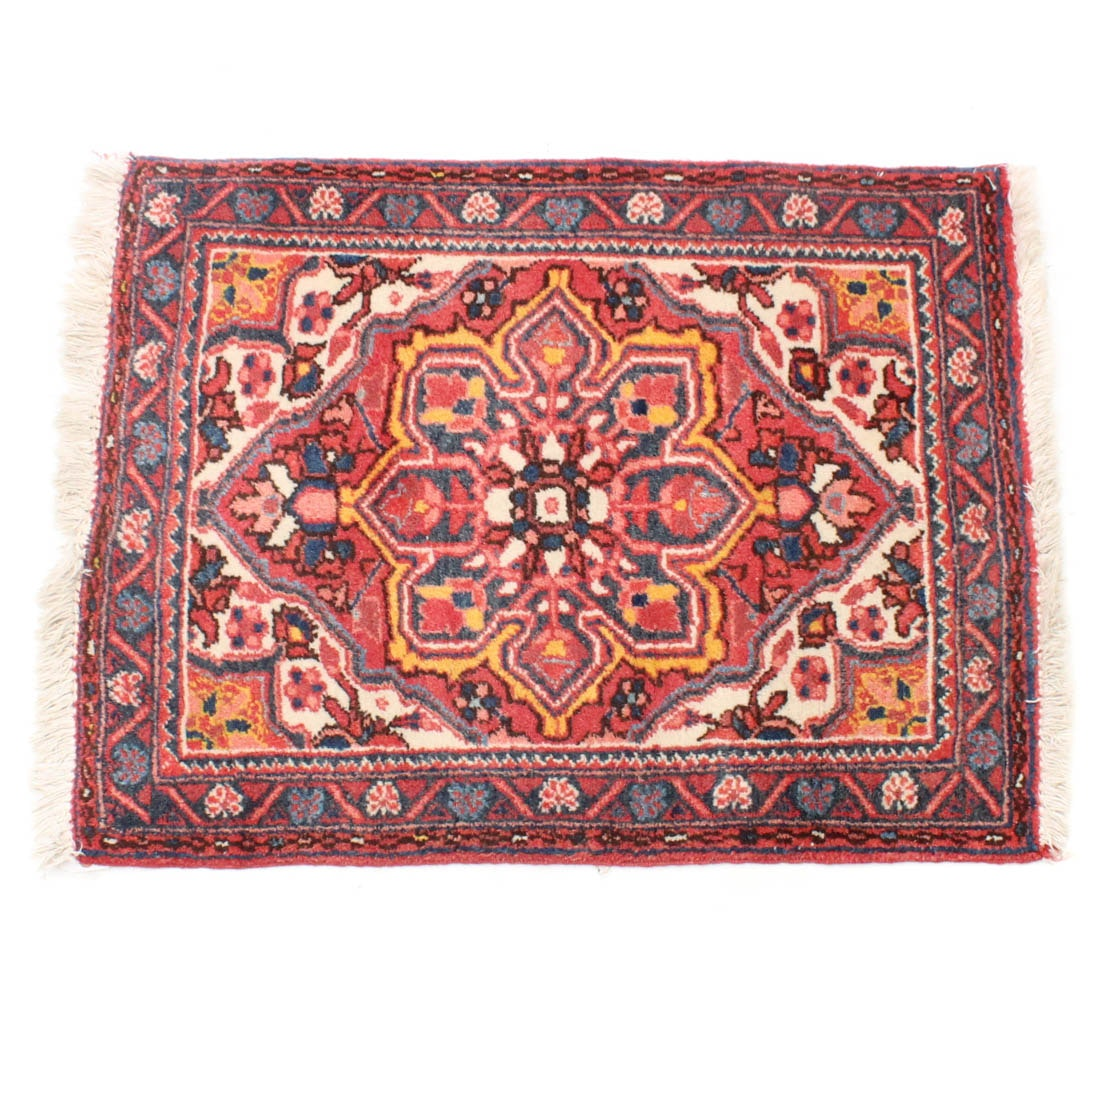 3' x 4' Semi-Antique Hand-Knotted Persian Heriz Rug